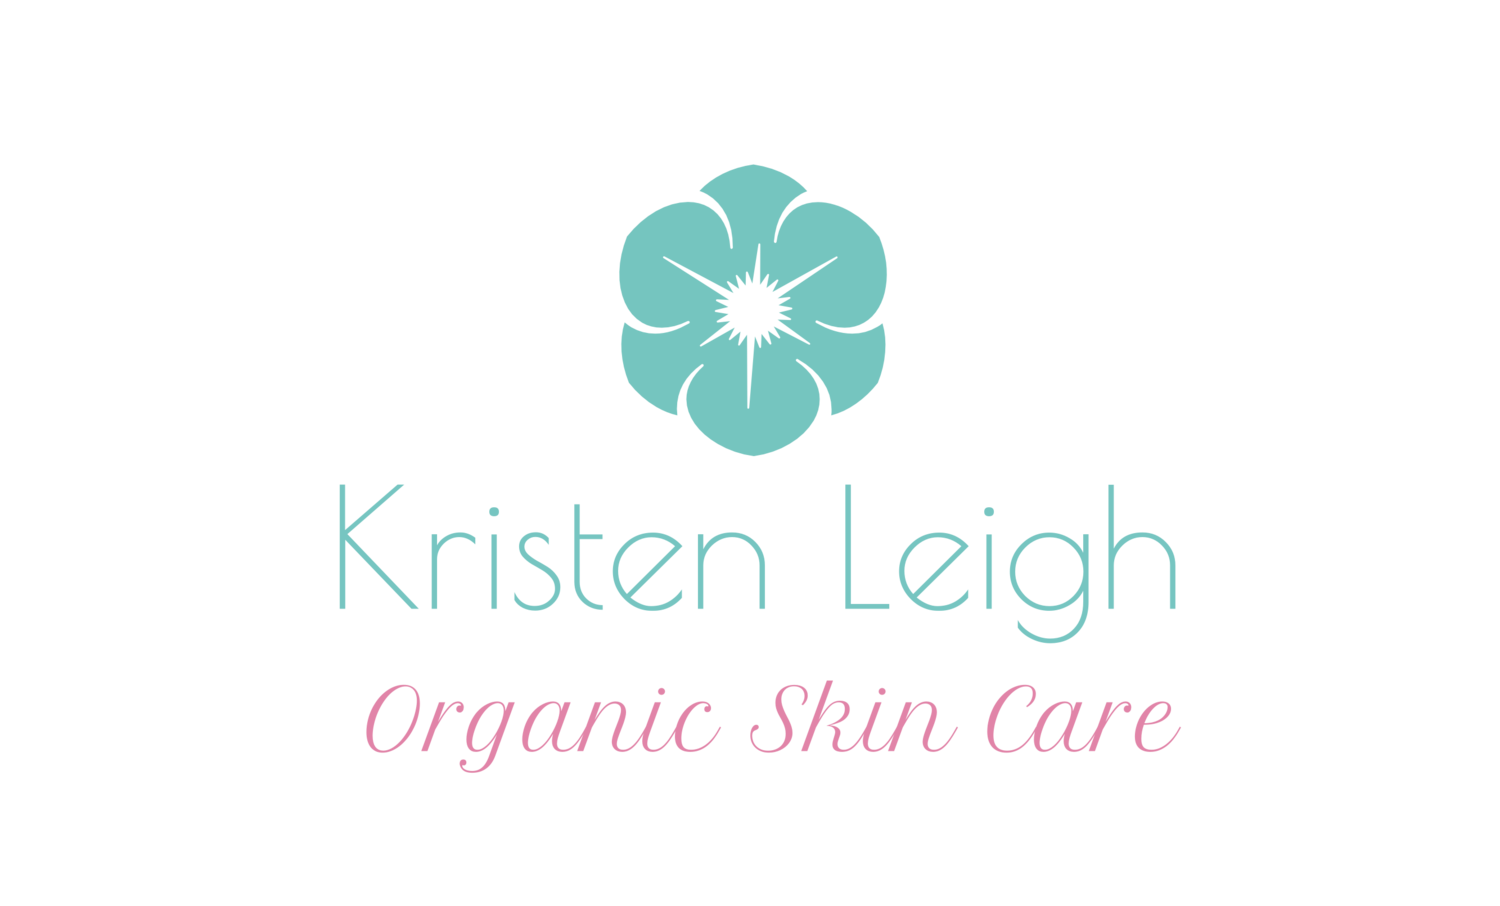 Organic Facials NYC | Best Organic Skin Care, Upper East Side | Anti-Aging, Acne & Ethnic Skin | Brow & Lash